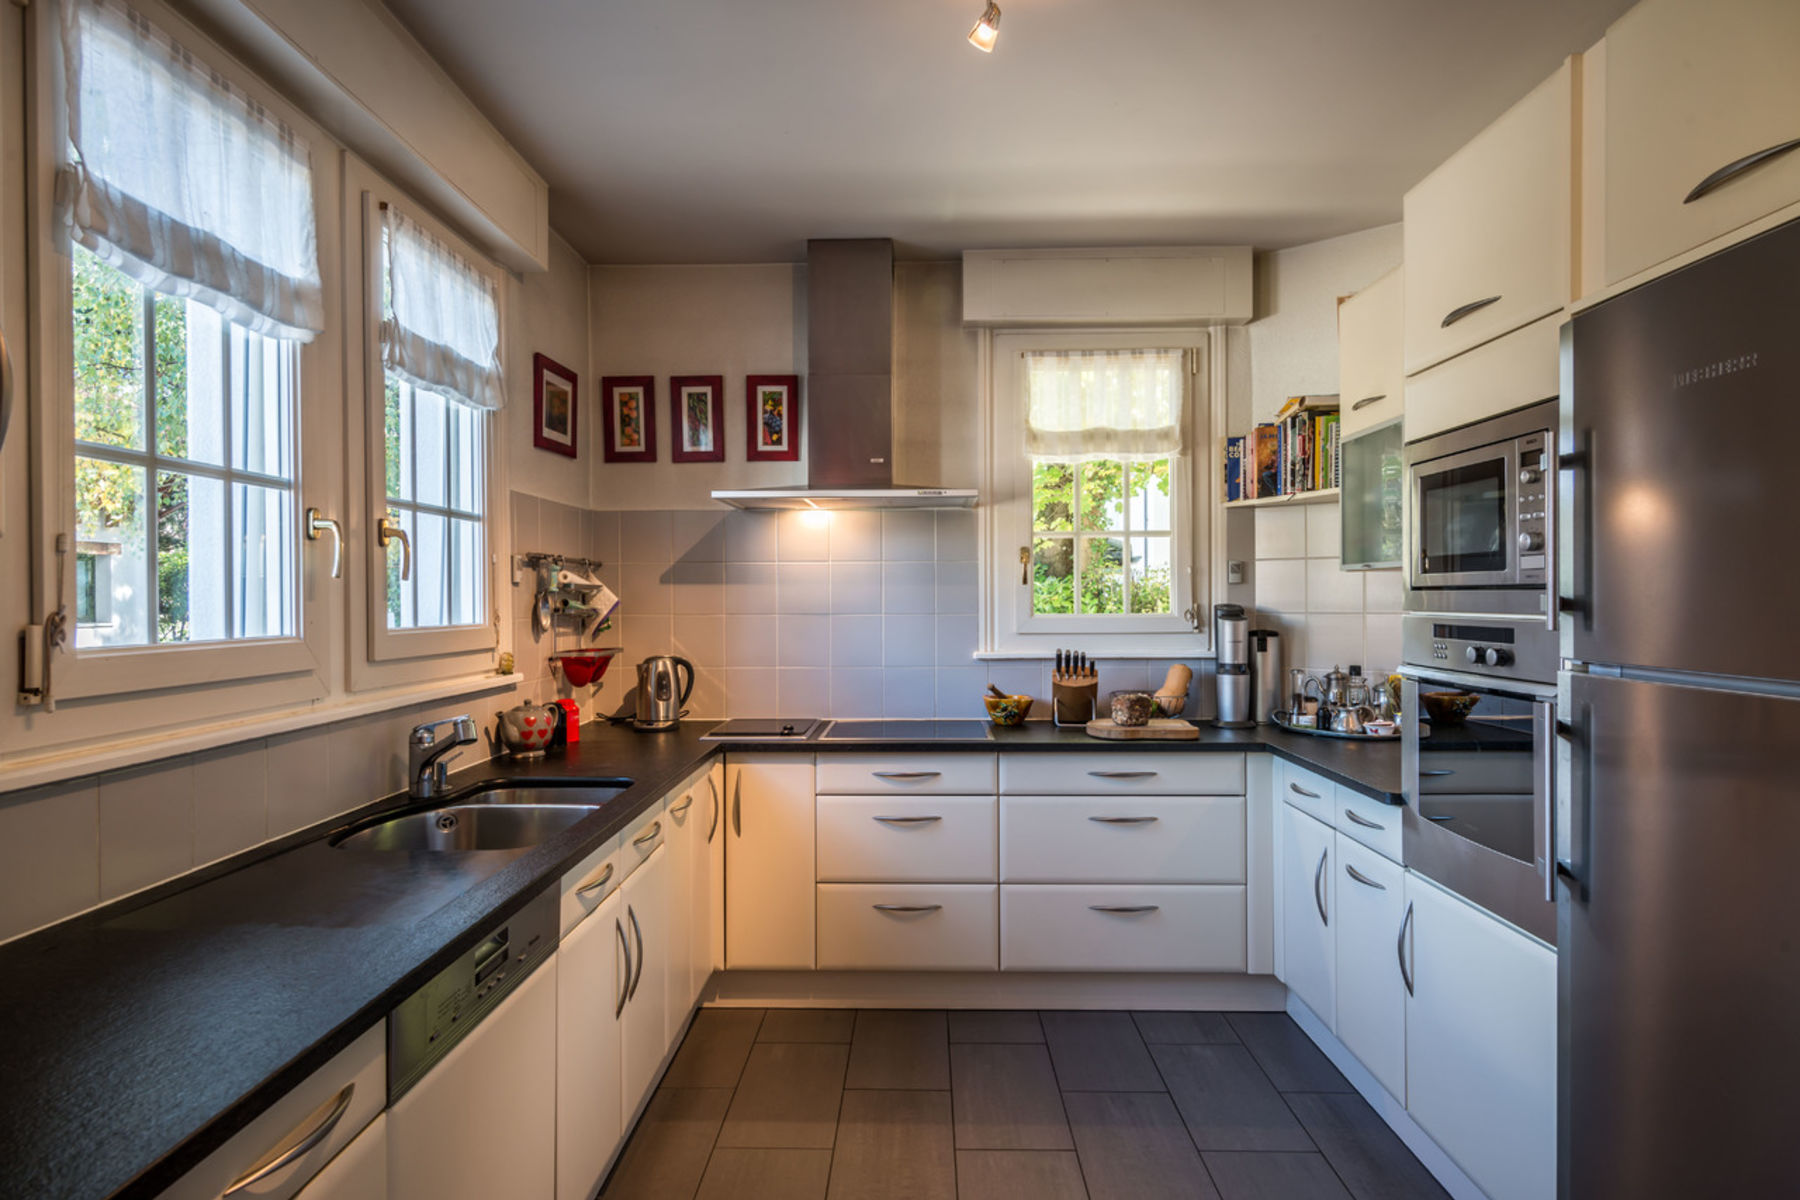 Additional photo for property listing at For sale, House, 1234 Vessy, Réf 8247  Vessy, Geneva 1234 Switzerland